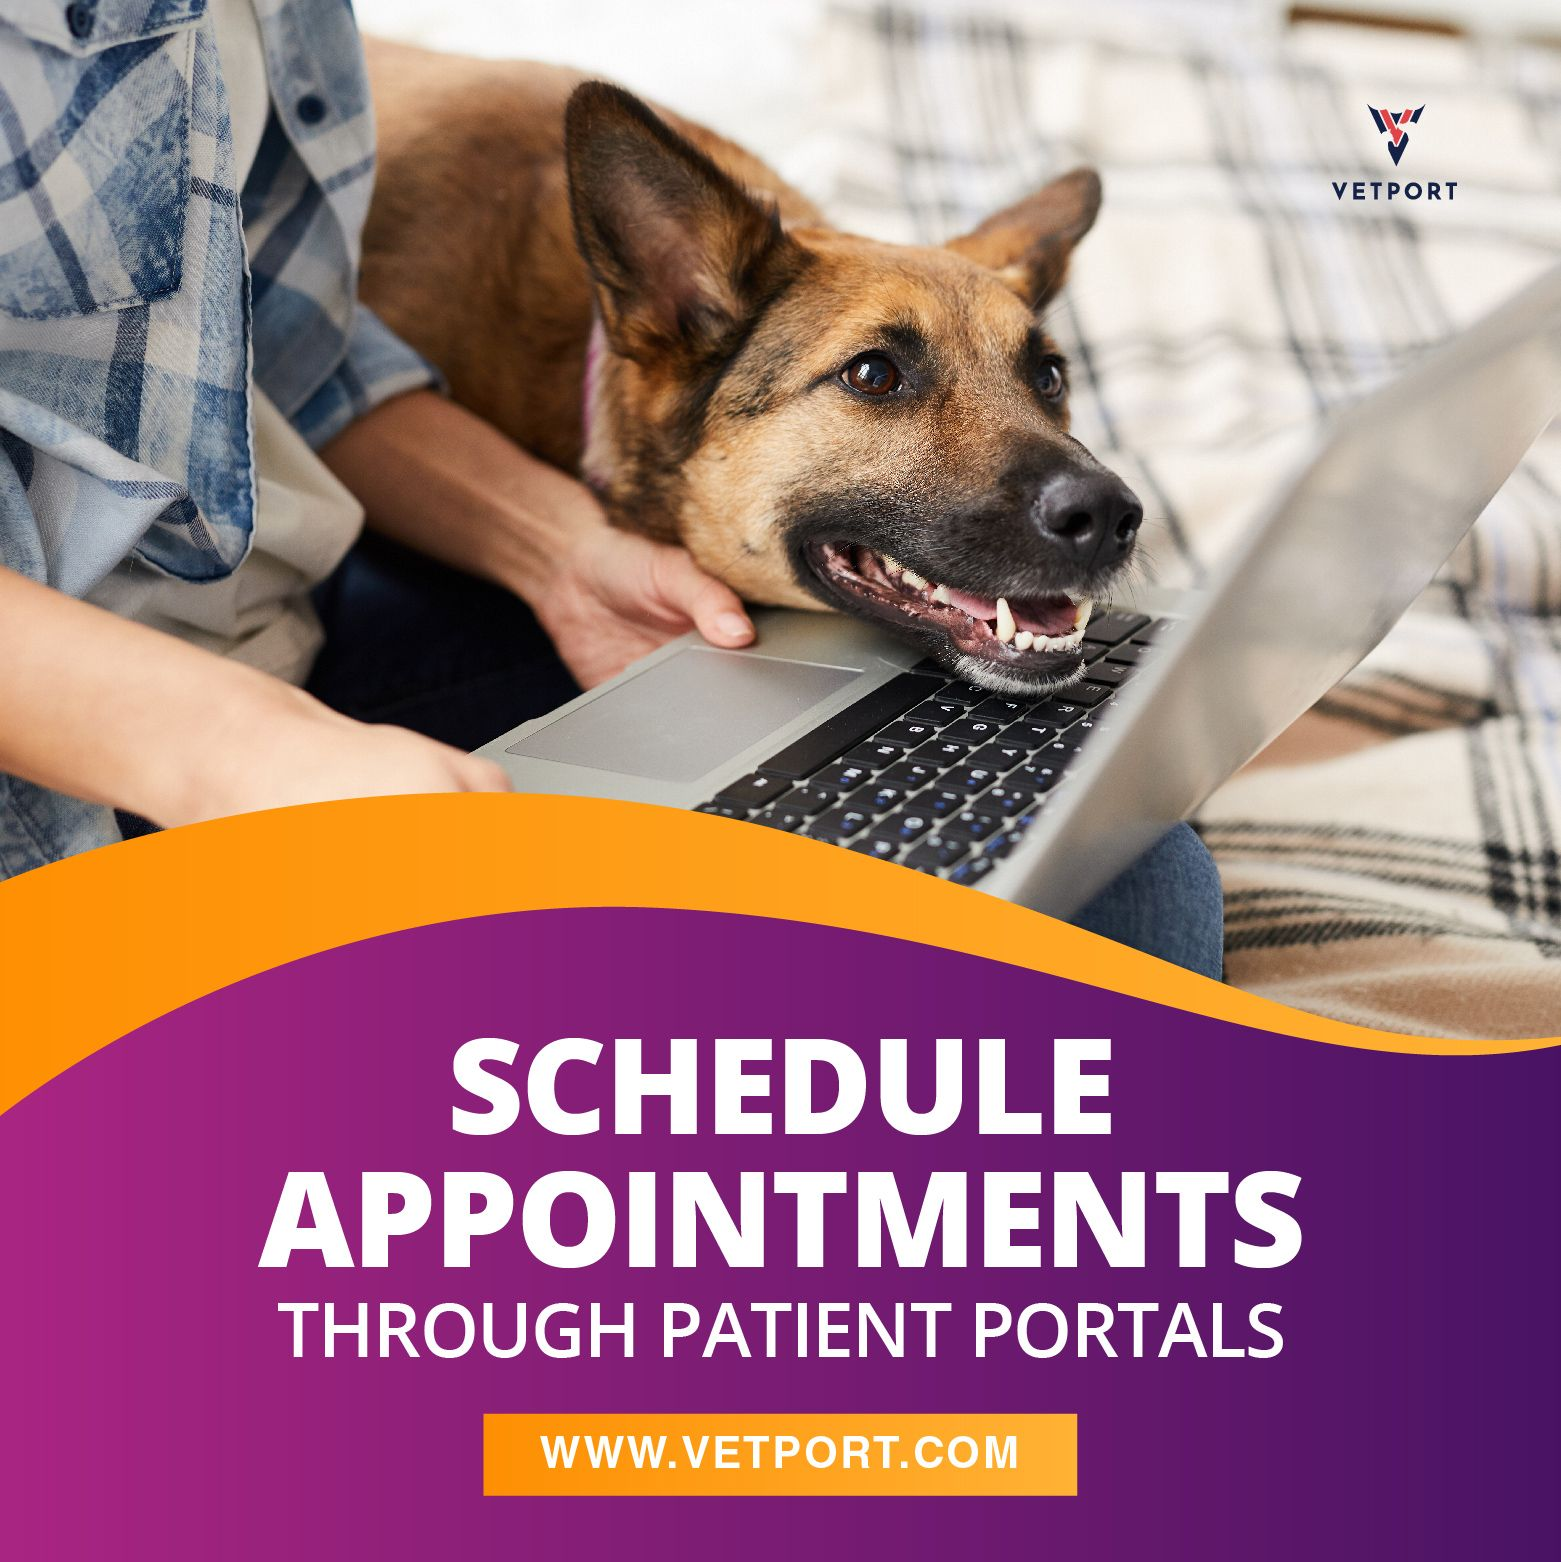 Scheduling appointment online, viewing health records and